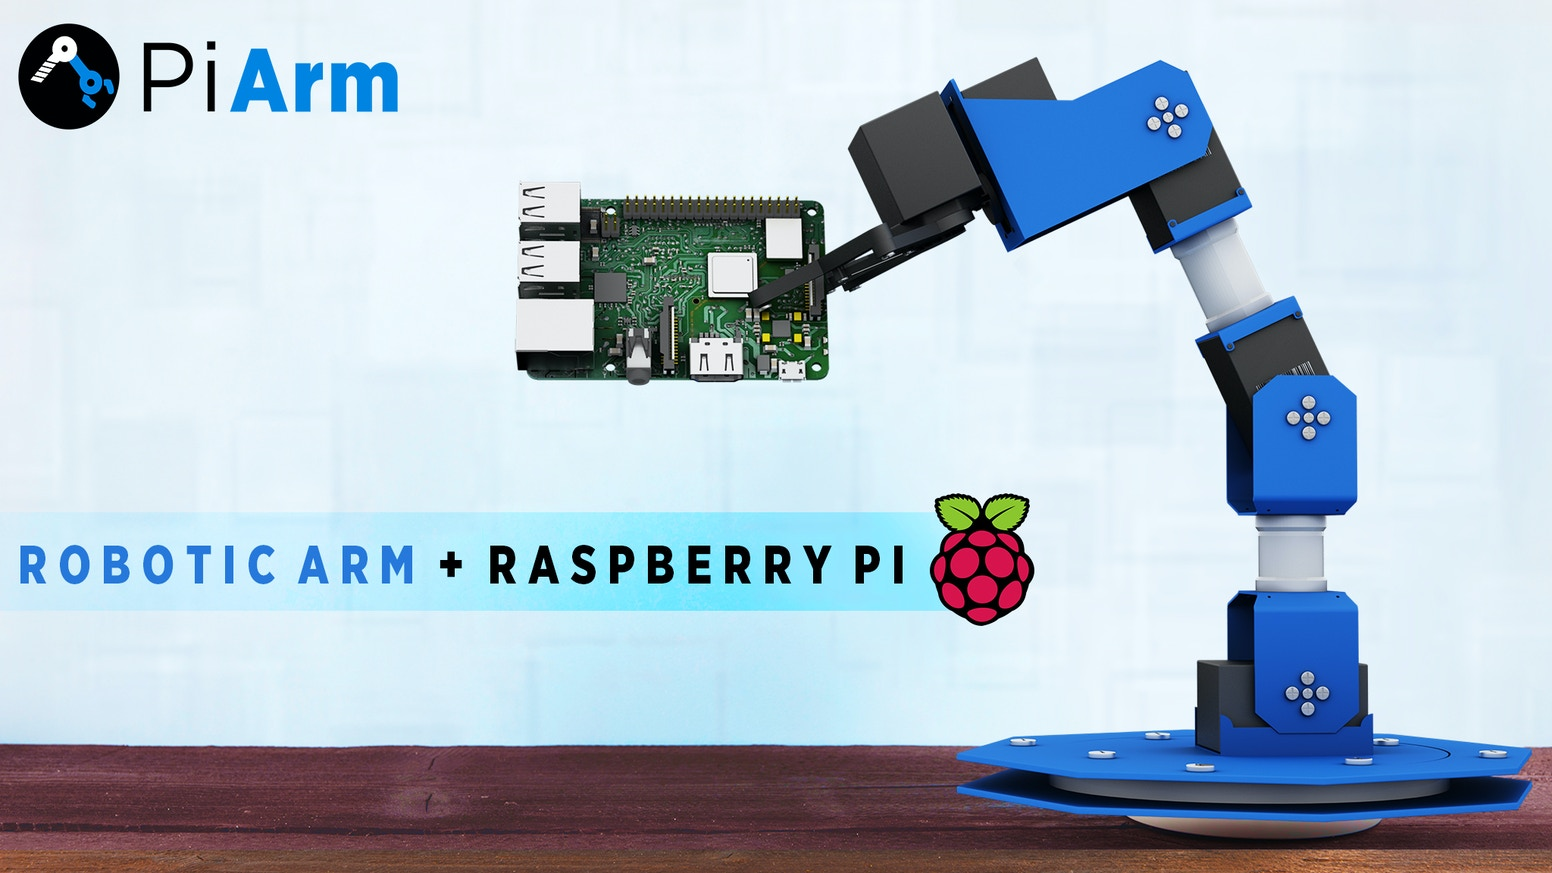 Introducing PiArm, the Raspberry Pi based DIY robotic Arm.